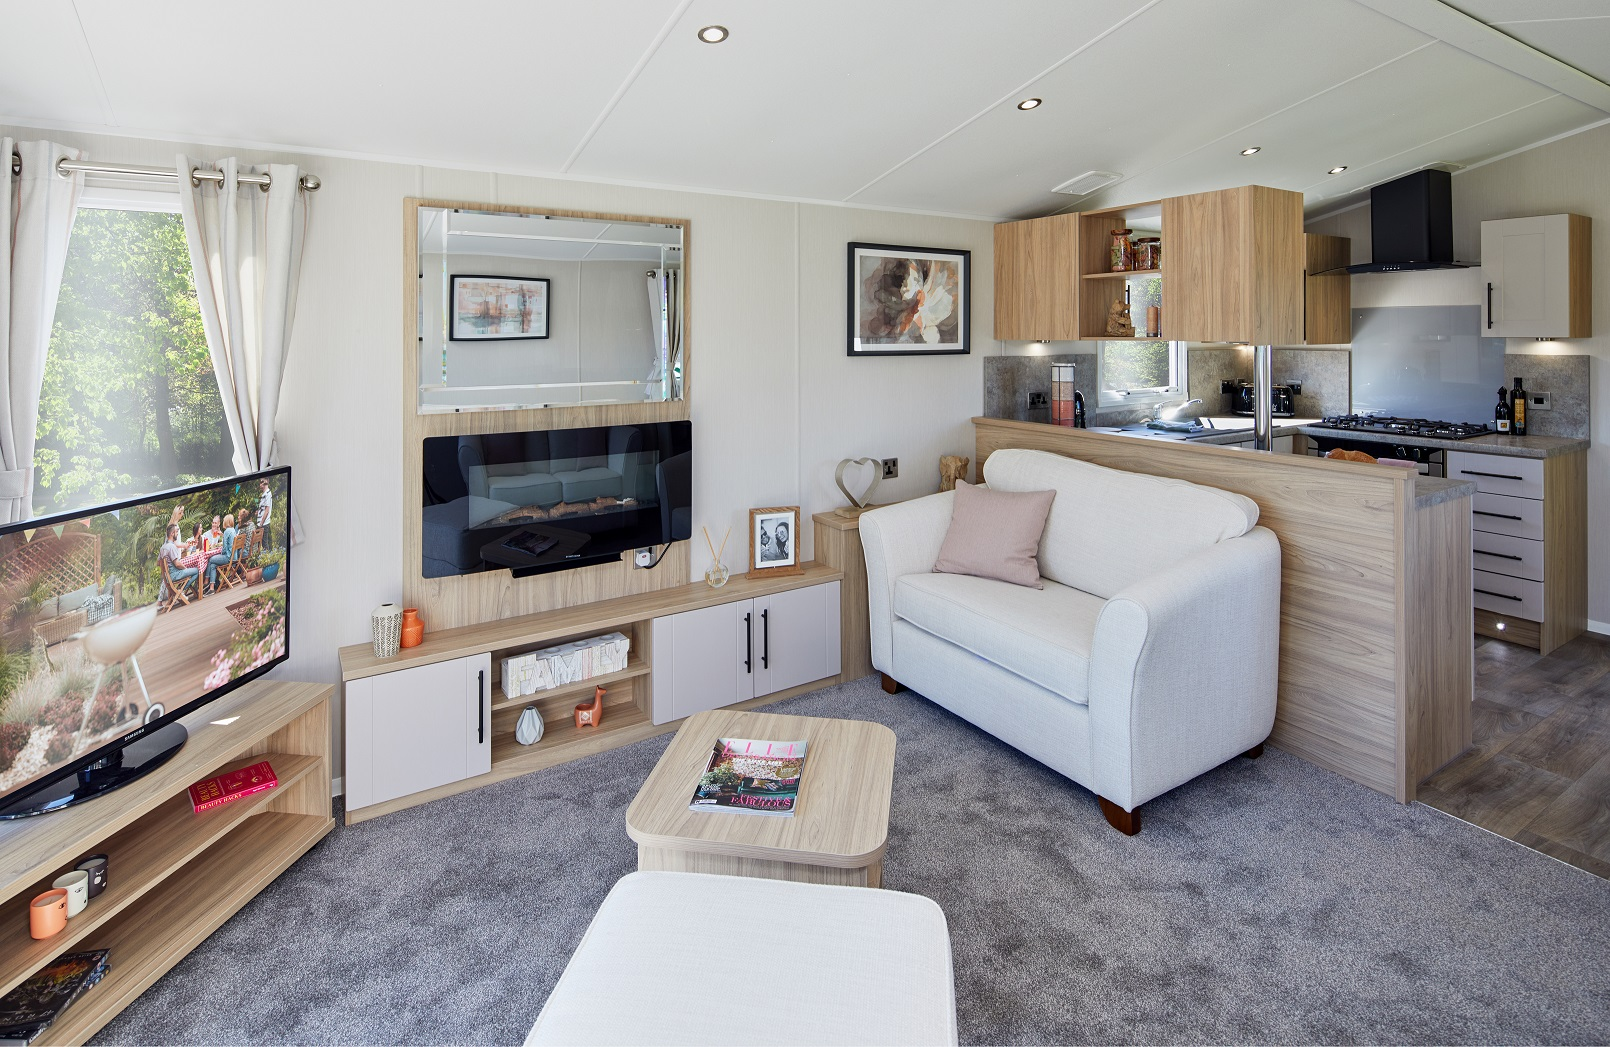 Willerby Manor: New Static Caravans and Holiday Homes for Sale, Available to Order Large Image 2